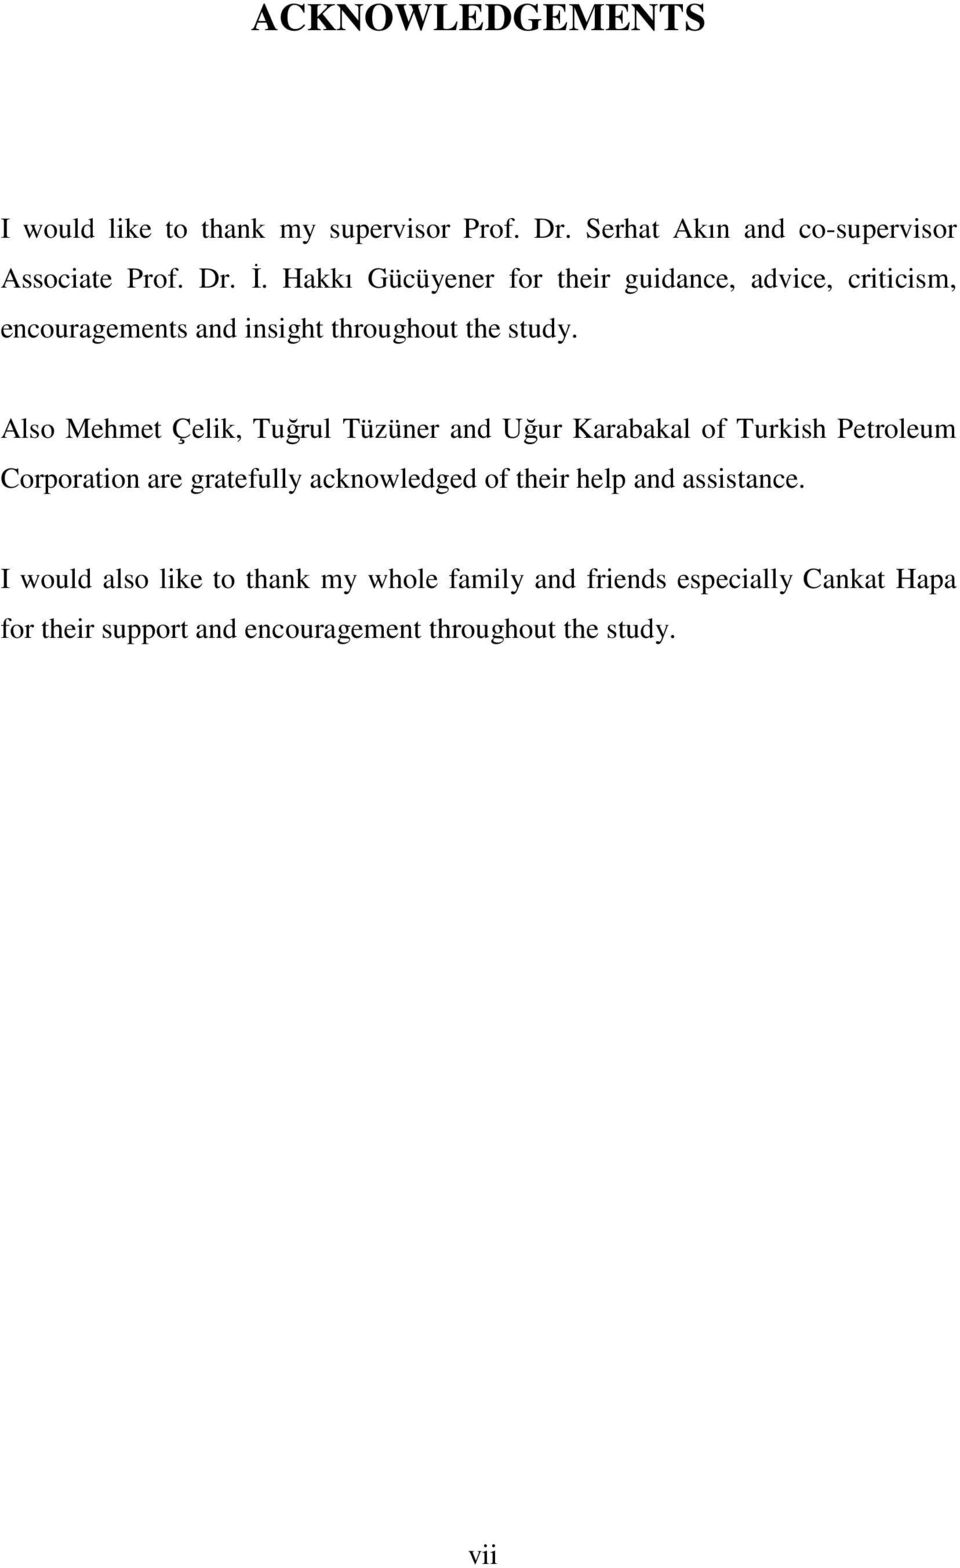 Also Mehmet Çelik, Tuğrul Tüzüner and Uğur Karabakal of Turkish Petroleum Corporation are gratefully acknowledged of their